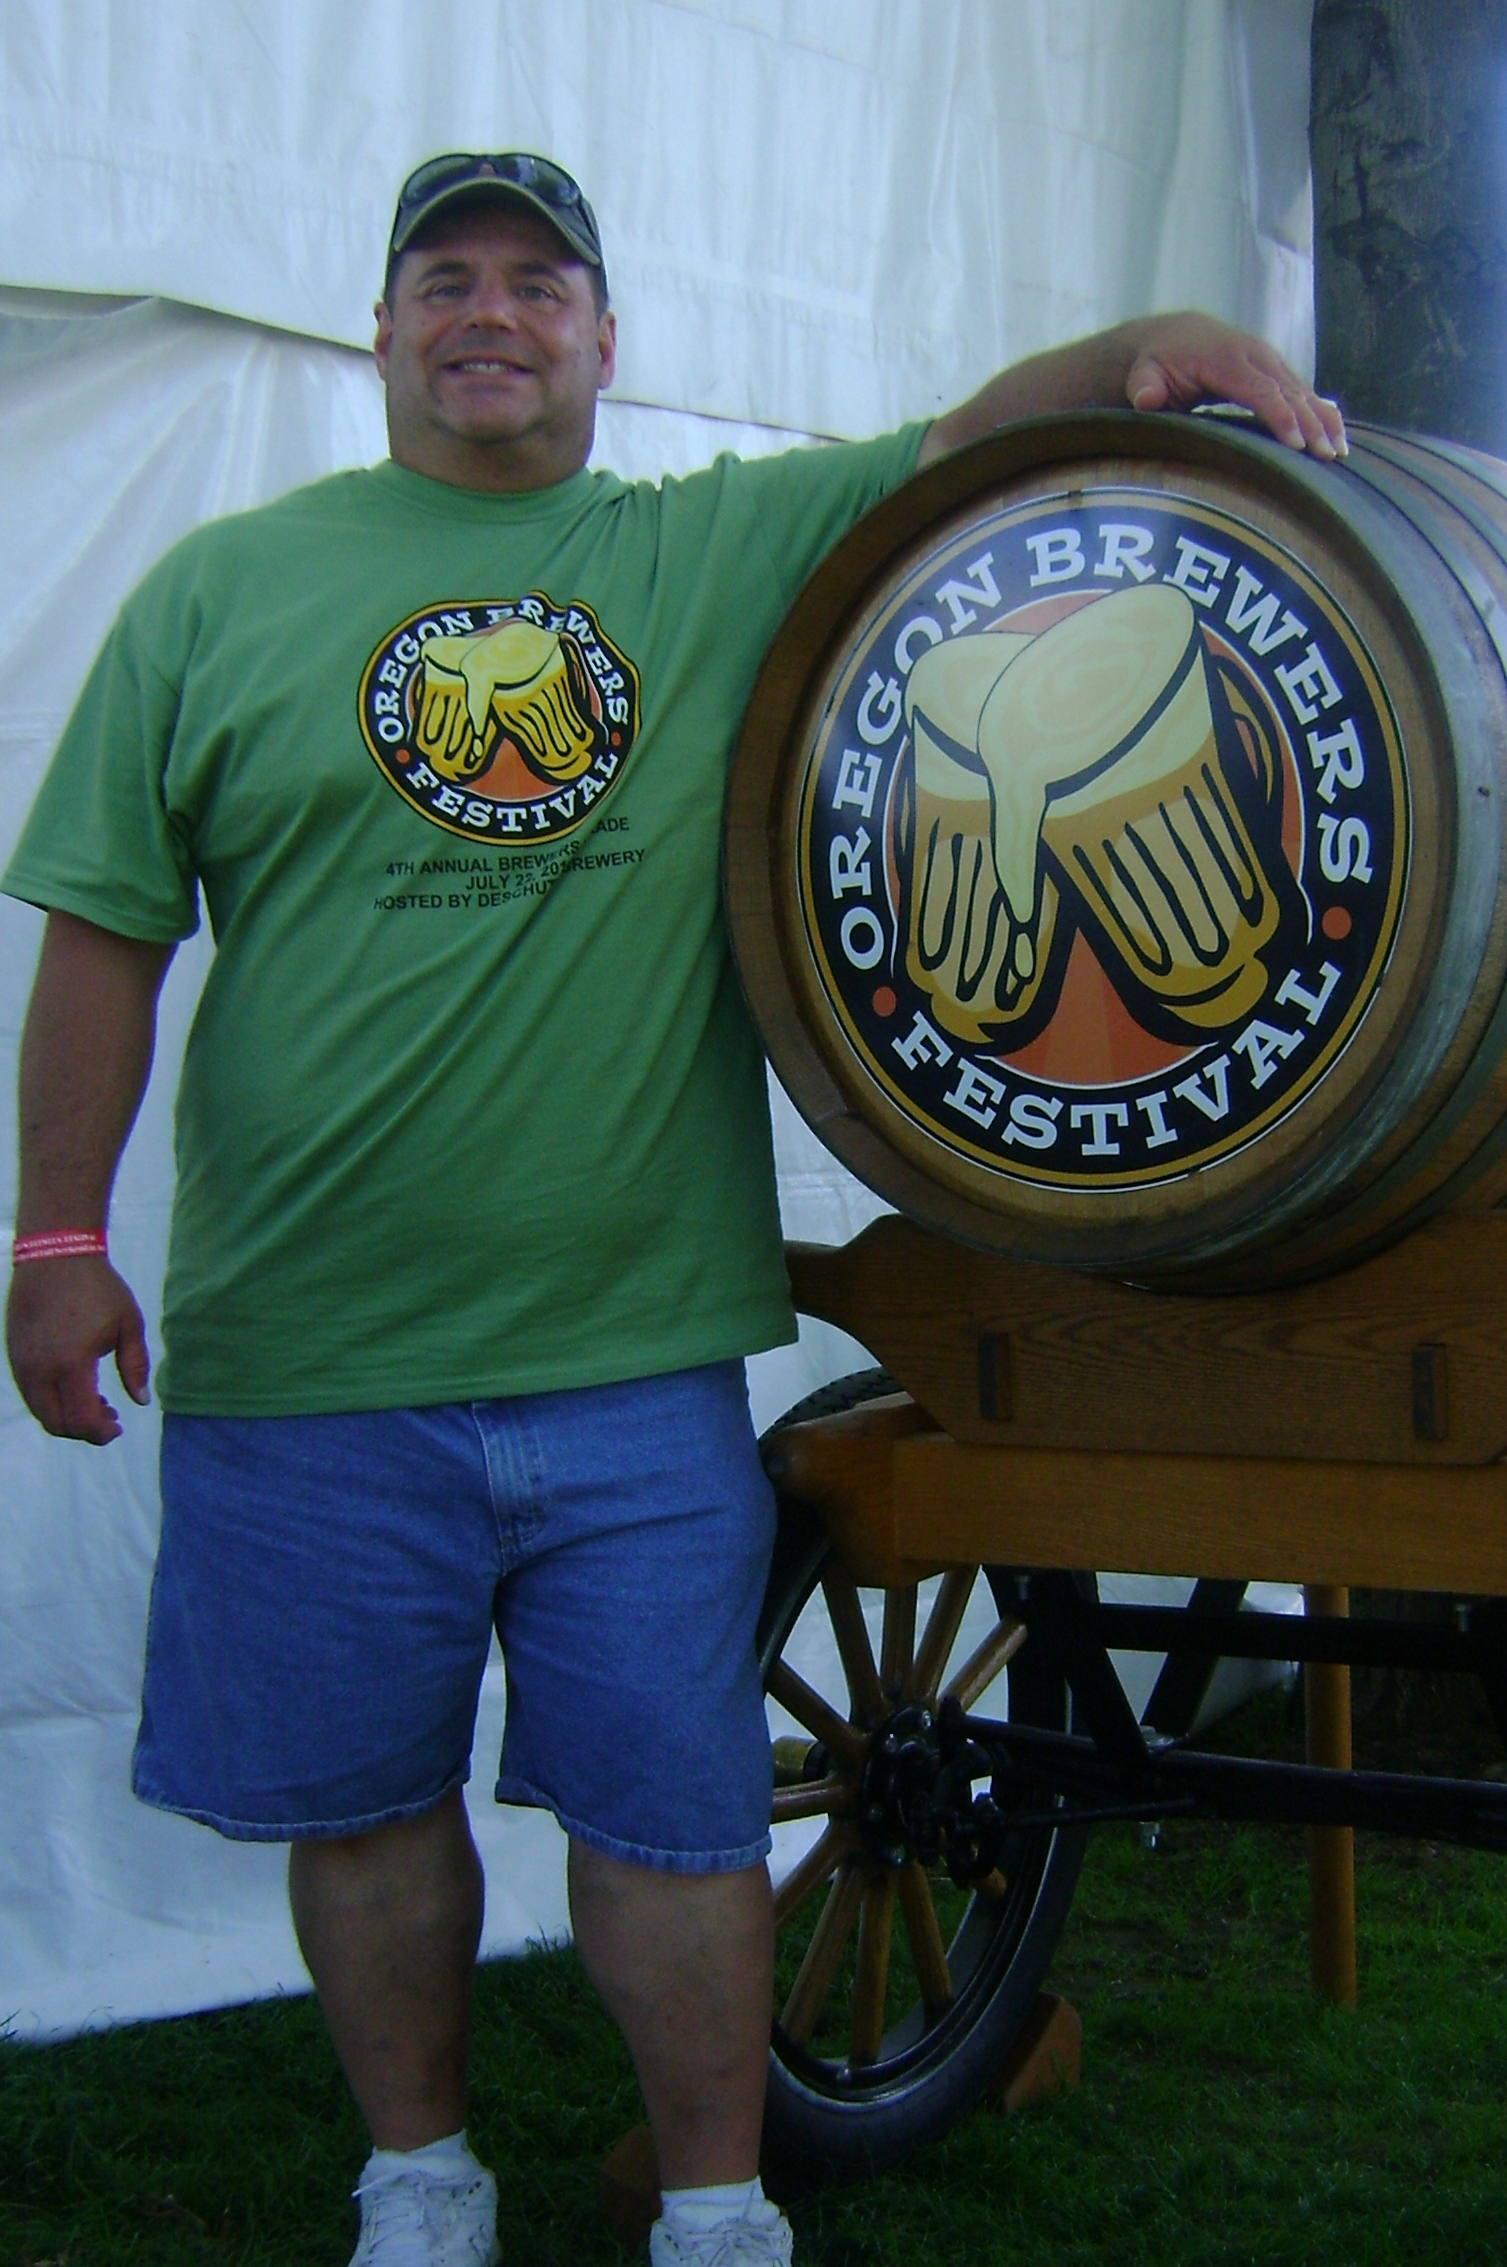 Mike from BrewDad